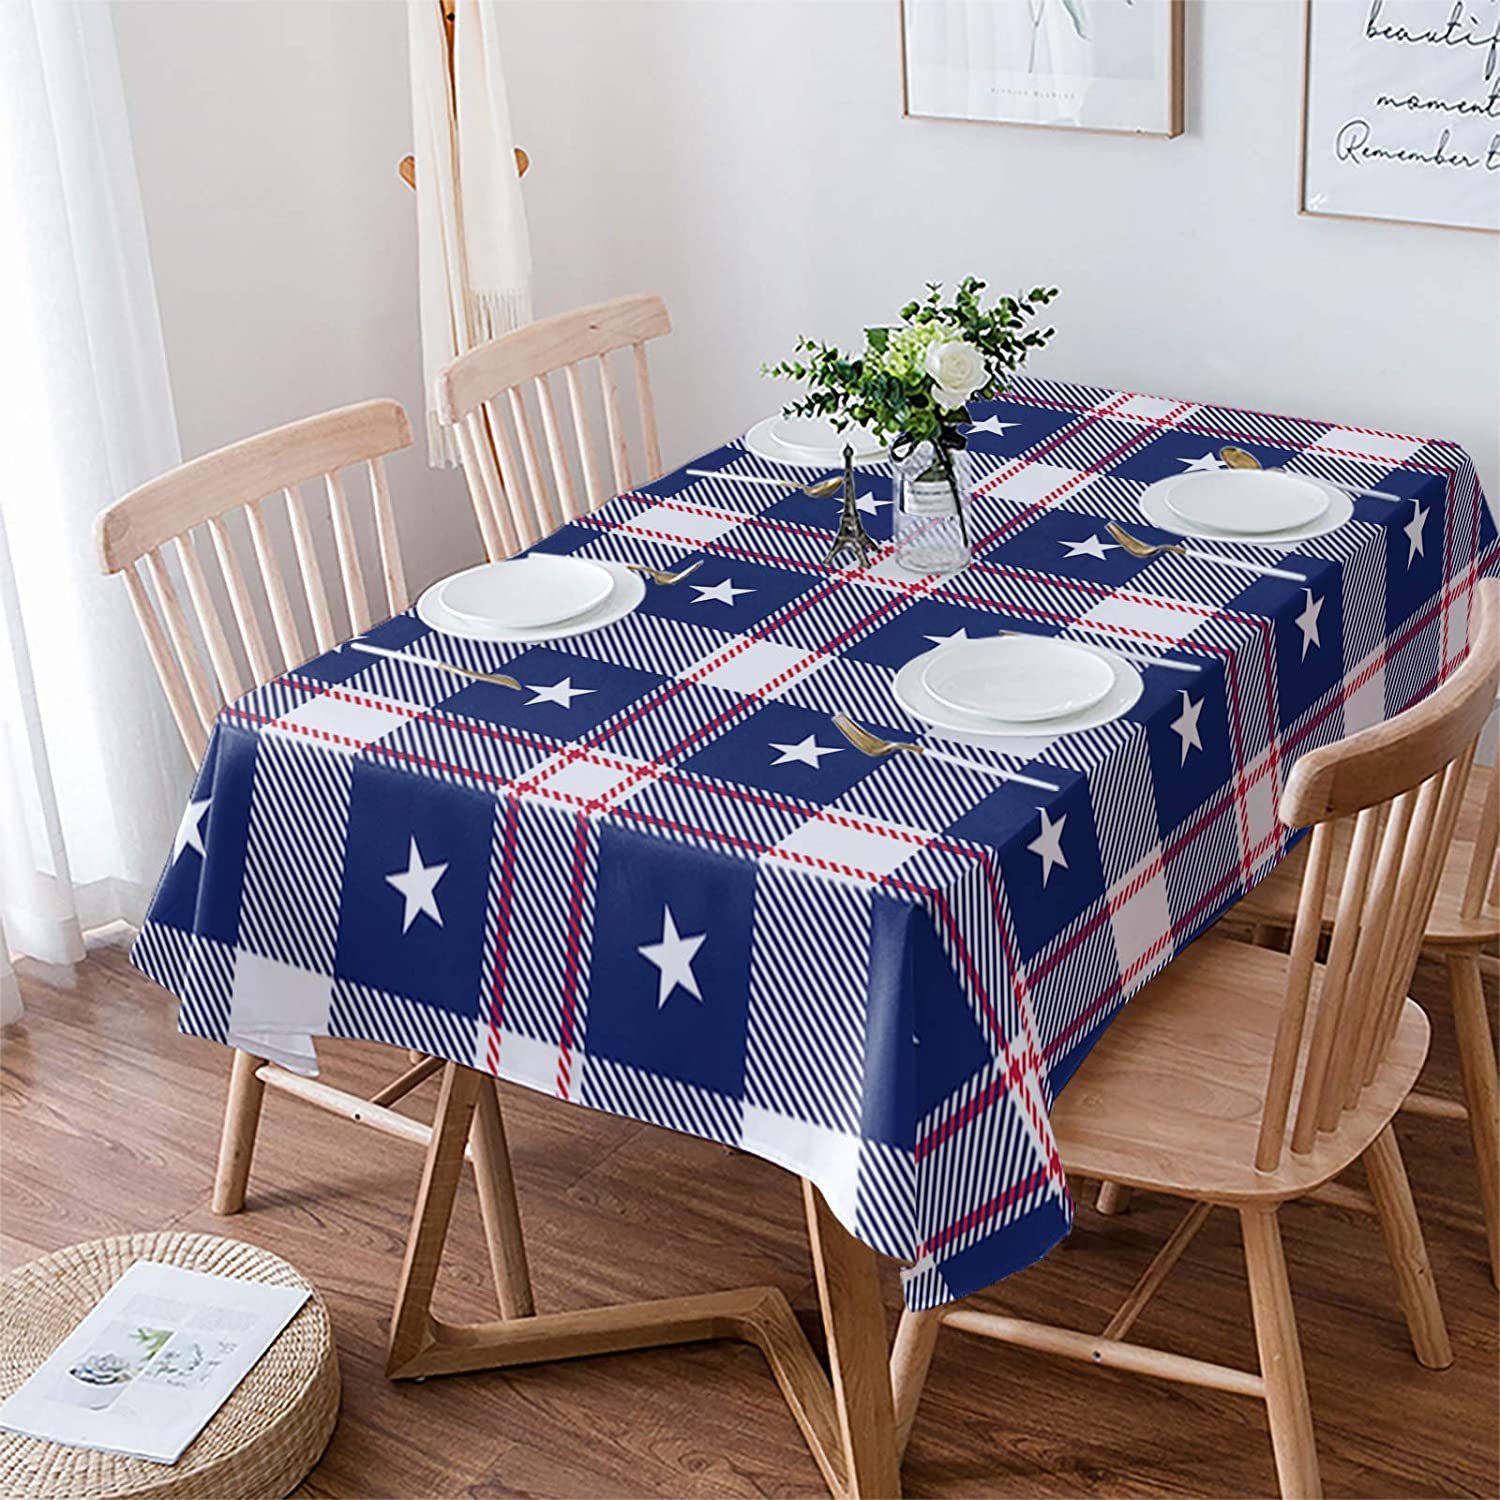 Fahome Max 74% OFF Table Cloth Wrinkle Oklahoma City Mall Free Dining Rectangle Cover 54